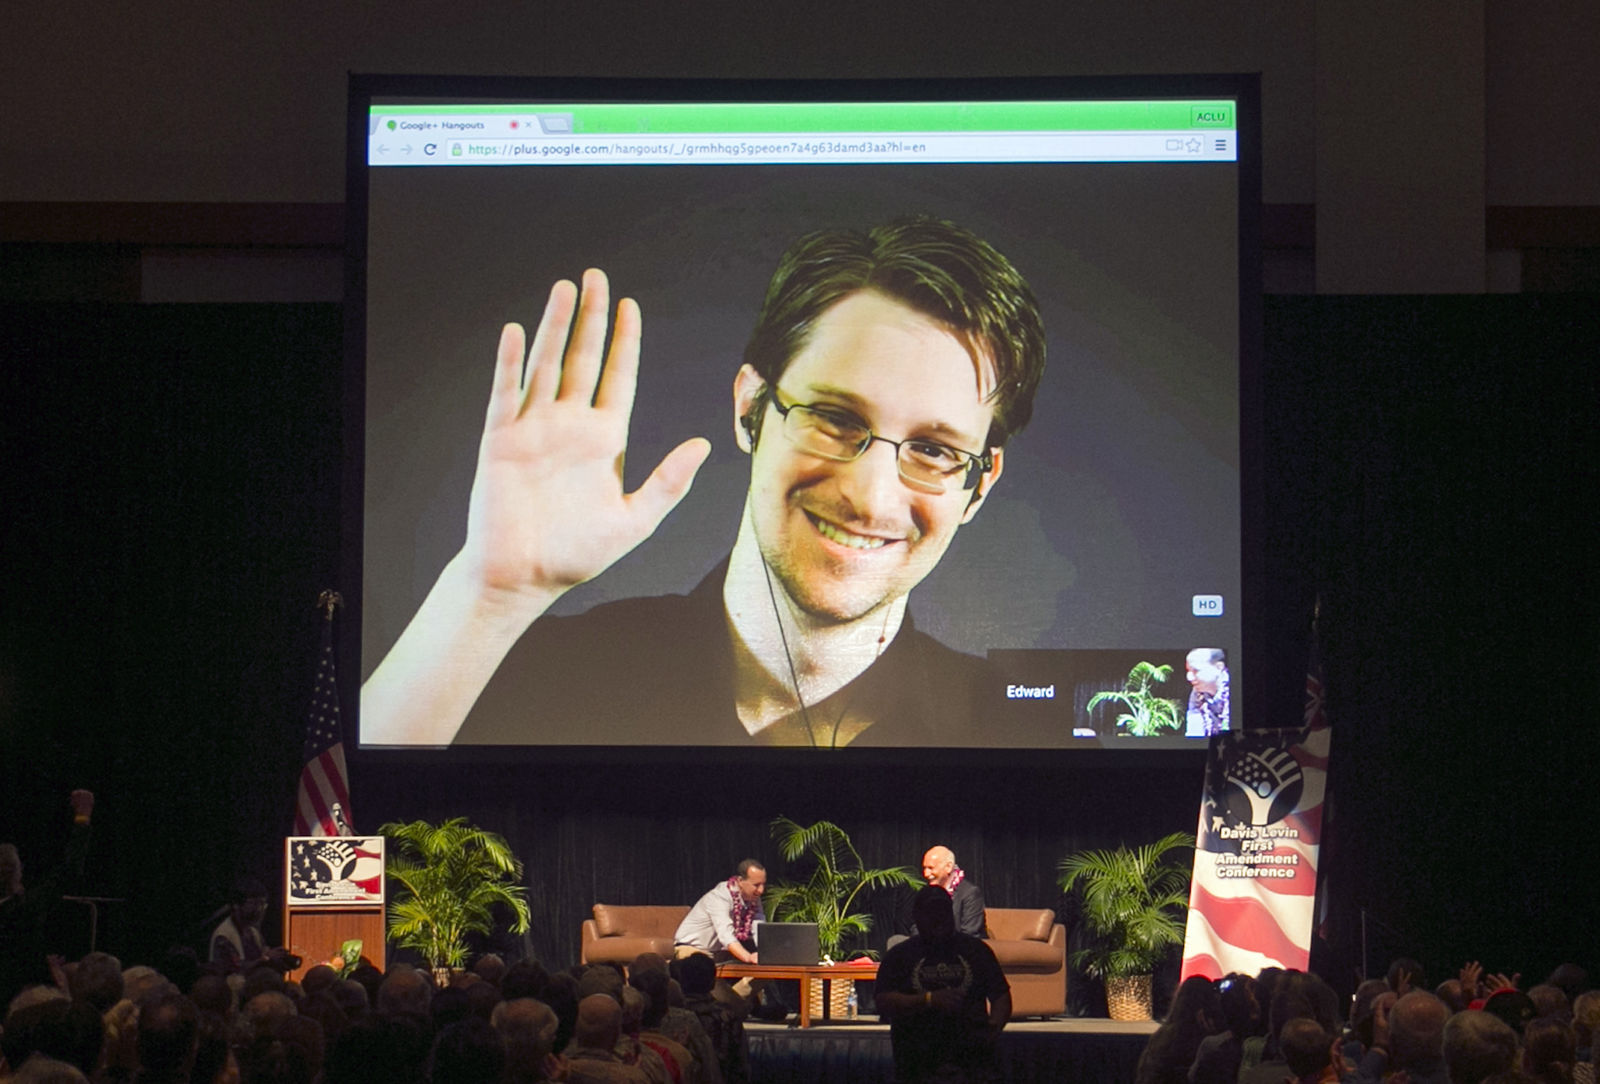 FILE - In this Feb. 14, 2015, file photo, Edward Snowden appears on a live video feed broadcast from Moscow at an event sponsored by ACLU Hawaii in Honolulu.{ } (AP Photo/Marco Garcia, File)